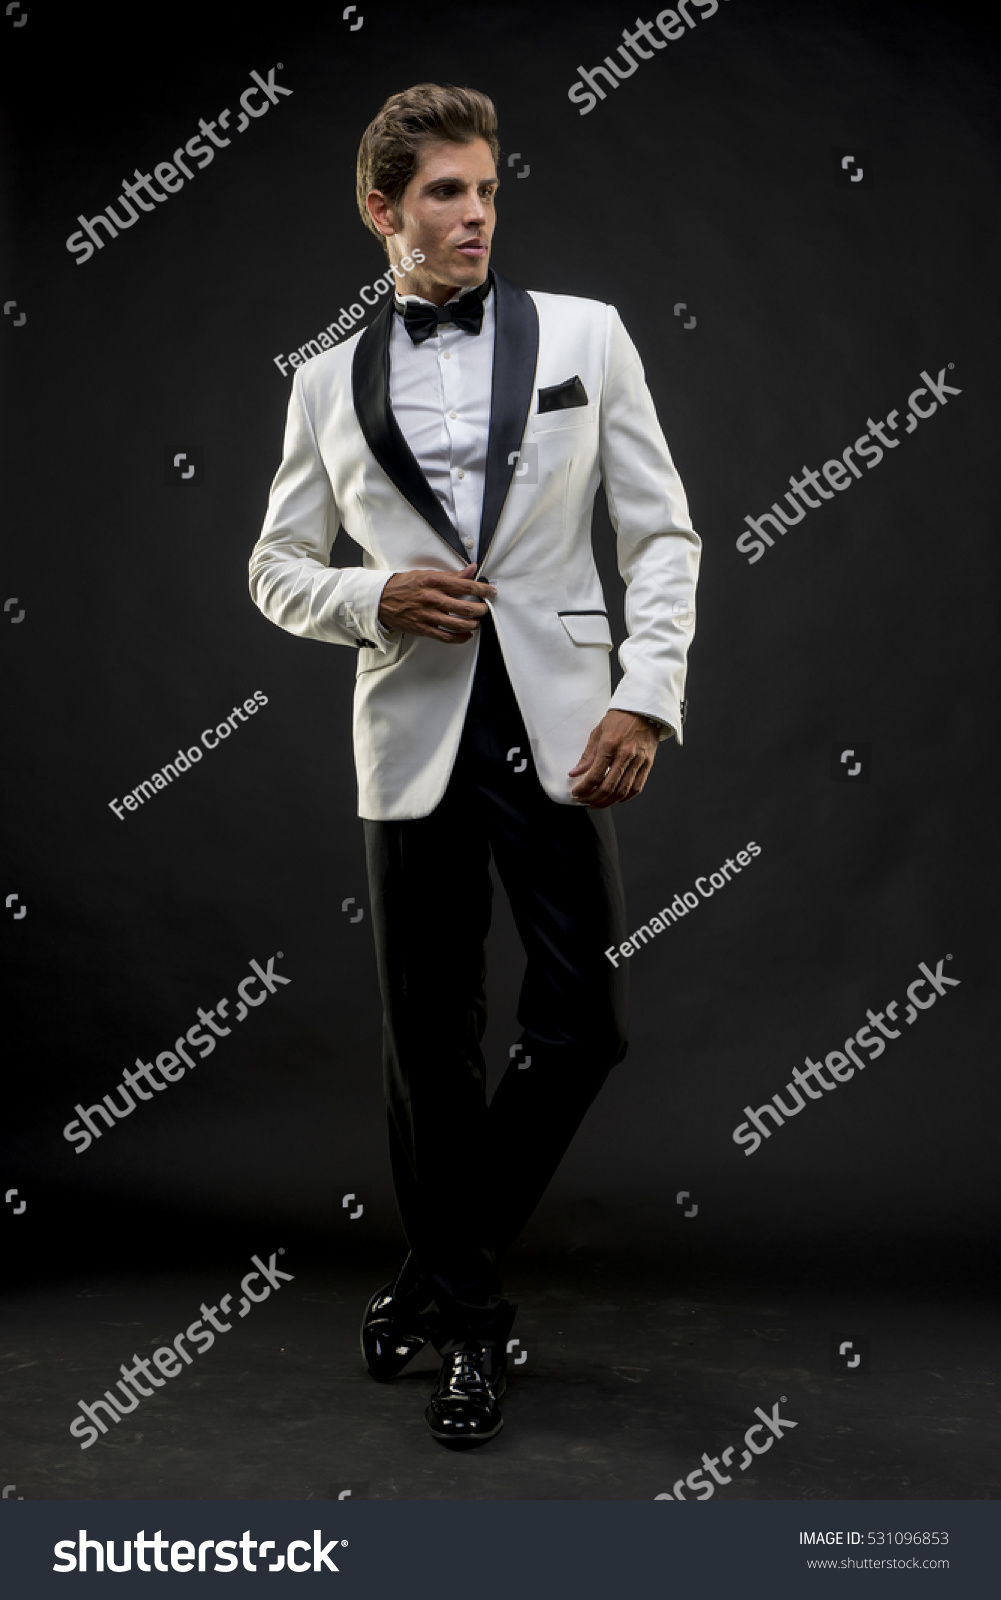 Dressed For The New Year: Tuxedo